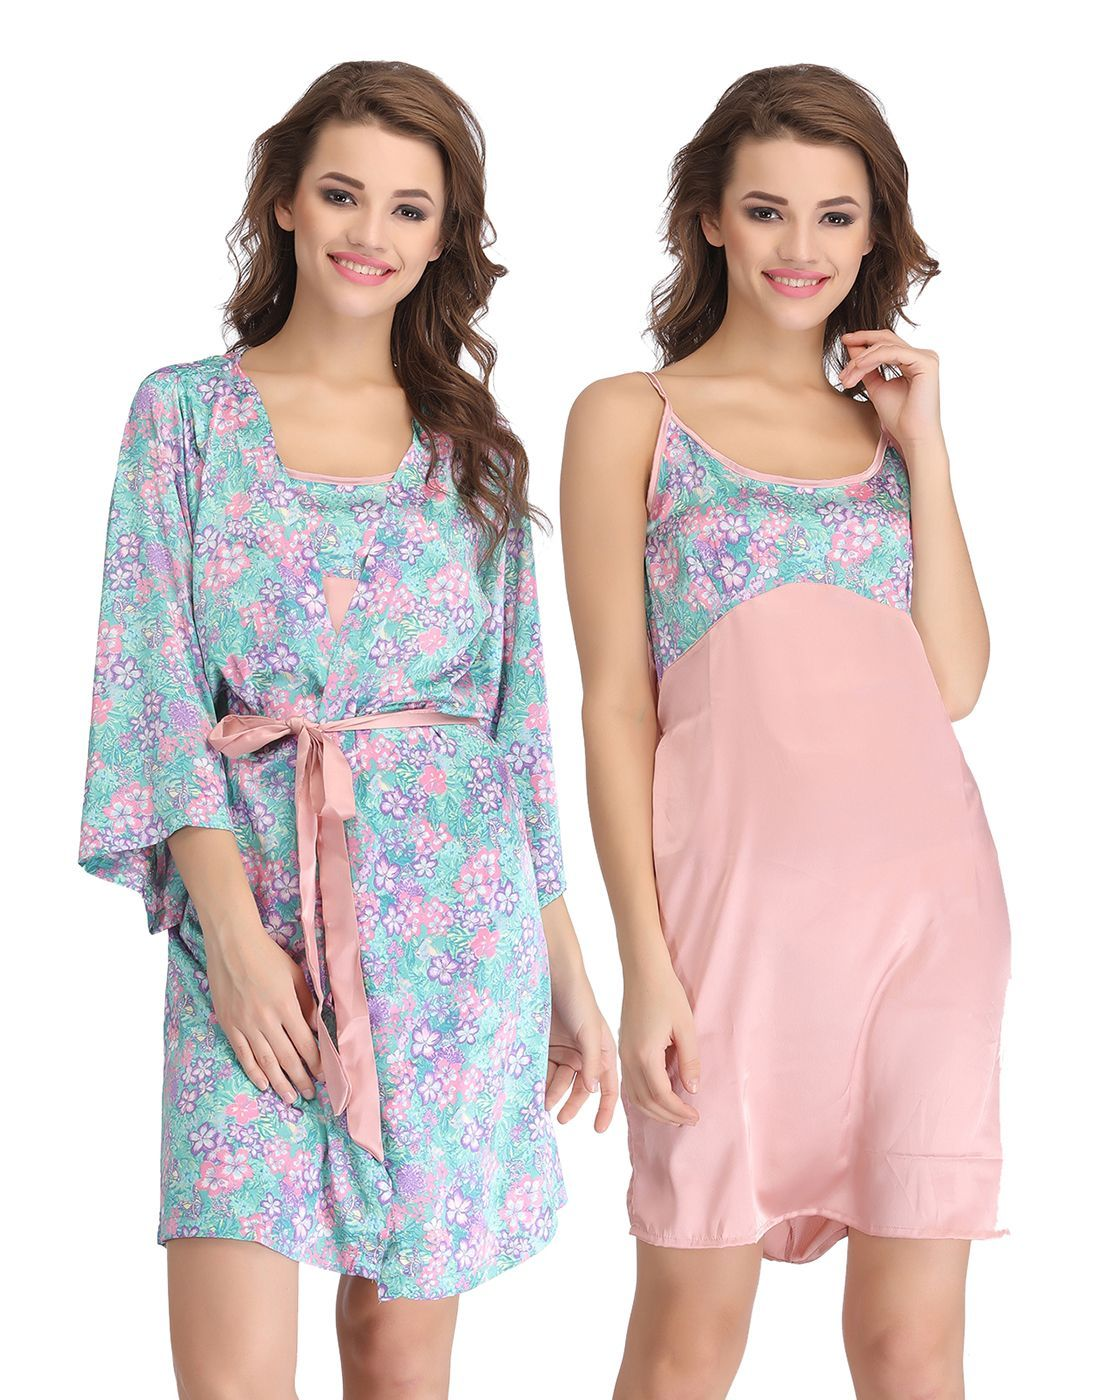 4ad528fcc95 Shop Nighty from Clovia online at the best prices at TLS! https